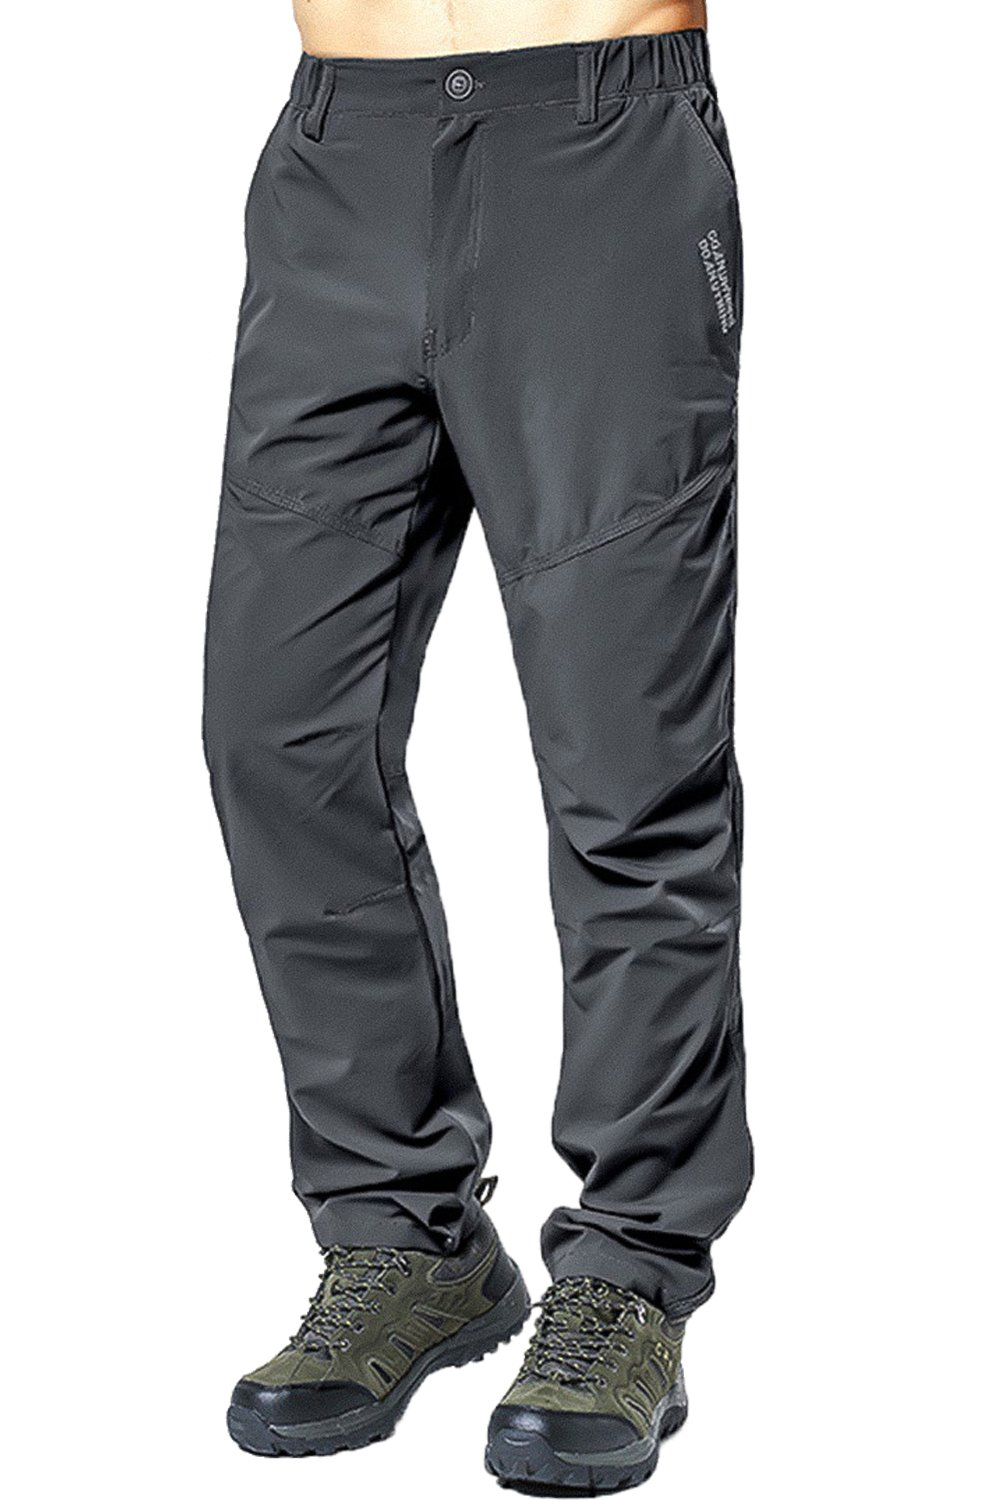 Mr.Stream Men's Windproof Breathable Quick Drying Outdoor Long Length Pants